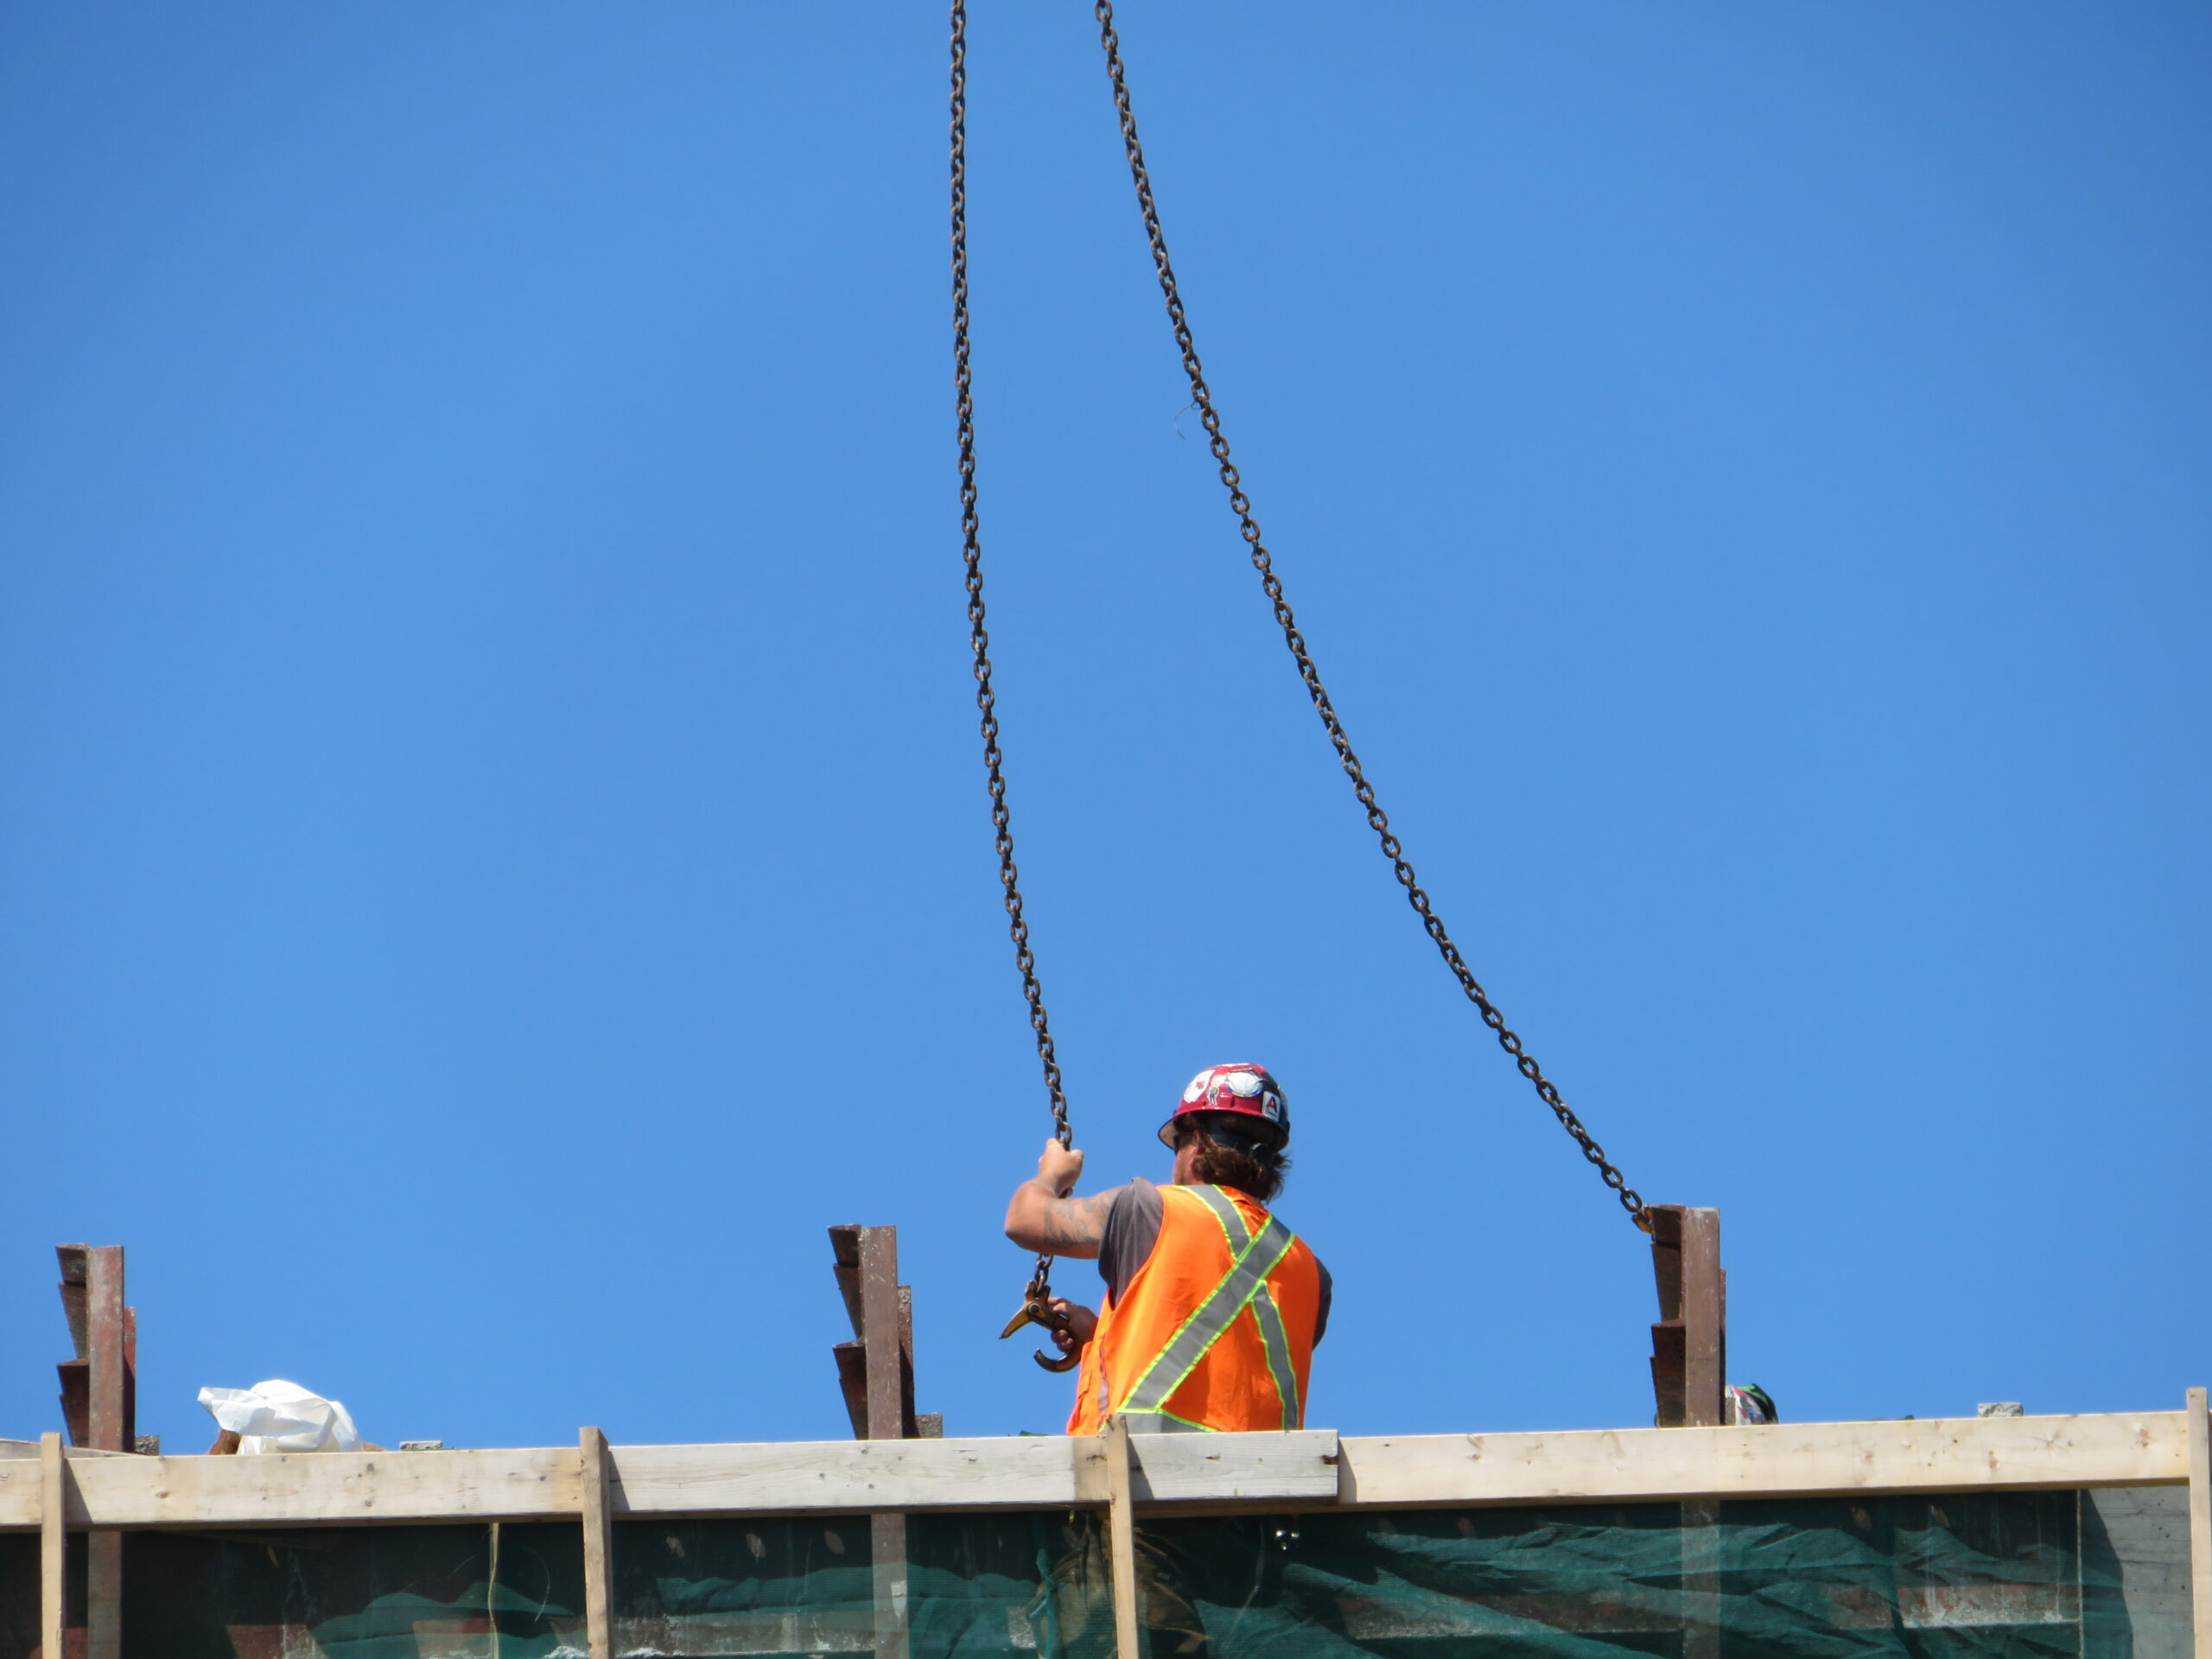 Hooking-up the 110-ton crane to the barrier wall formwork for removal